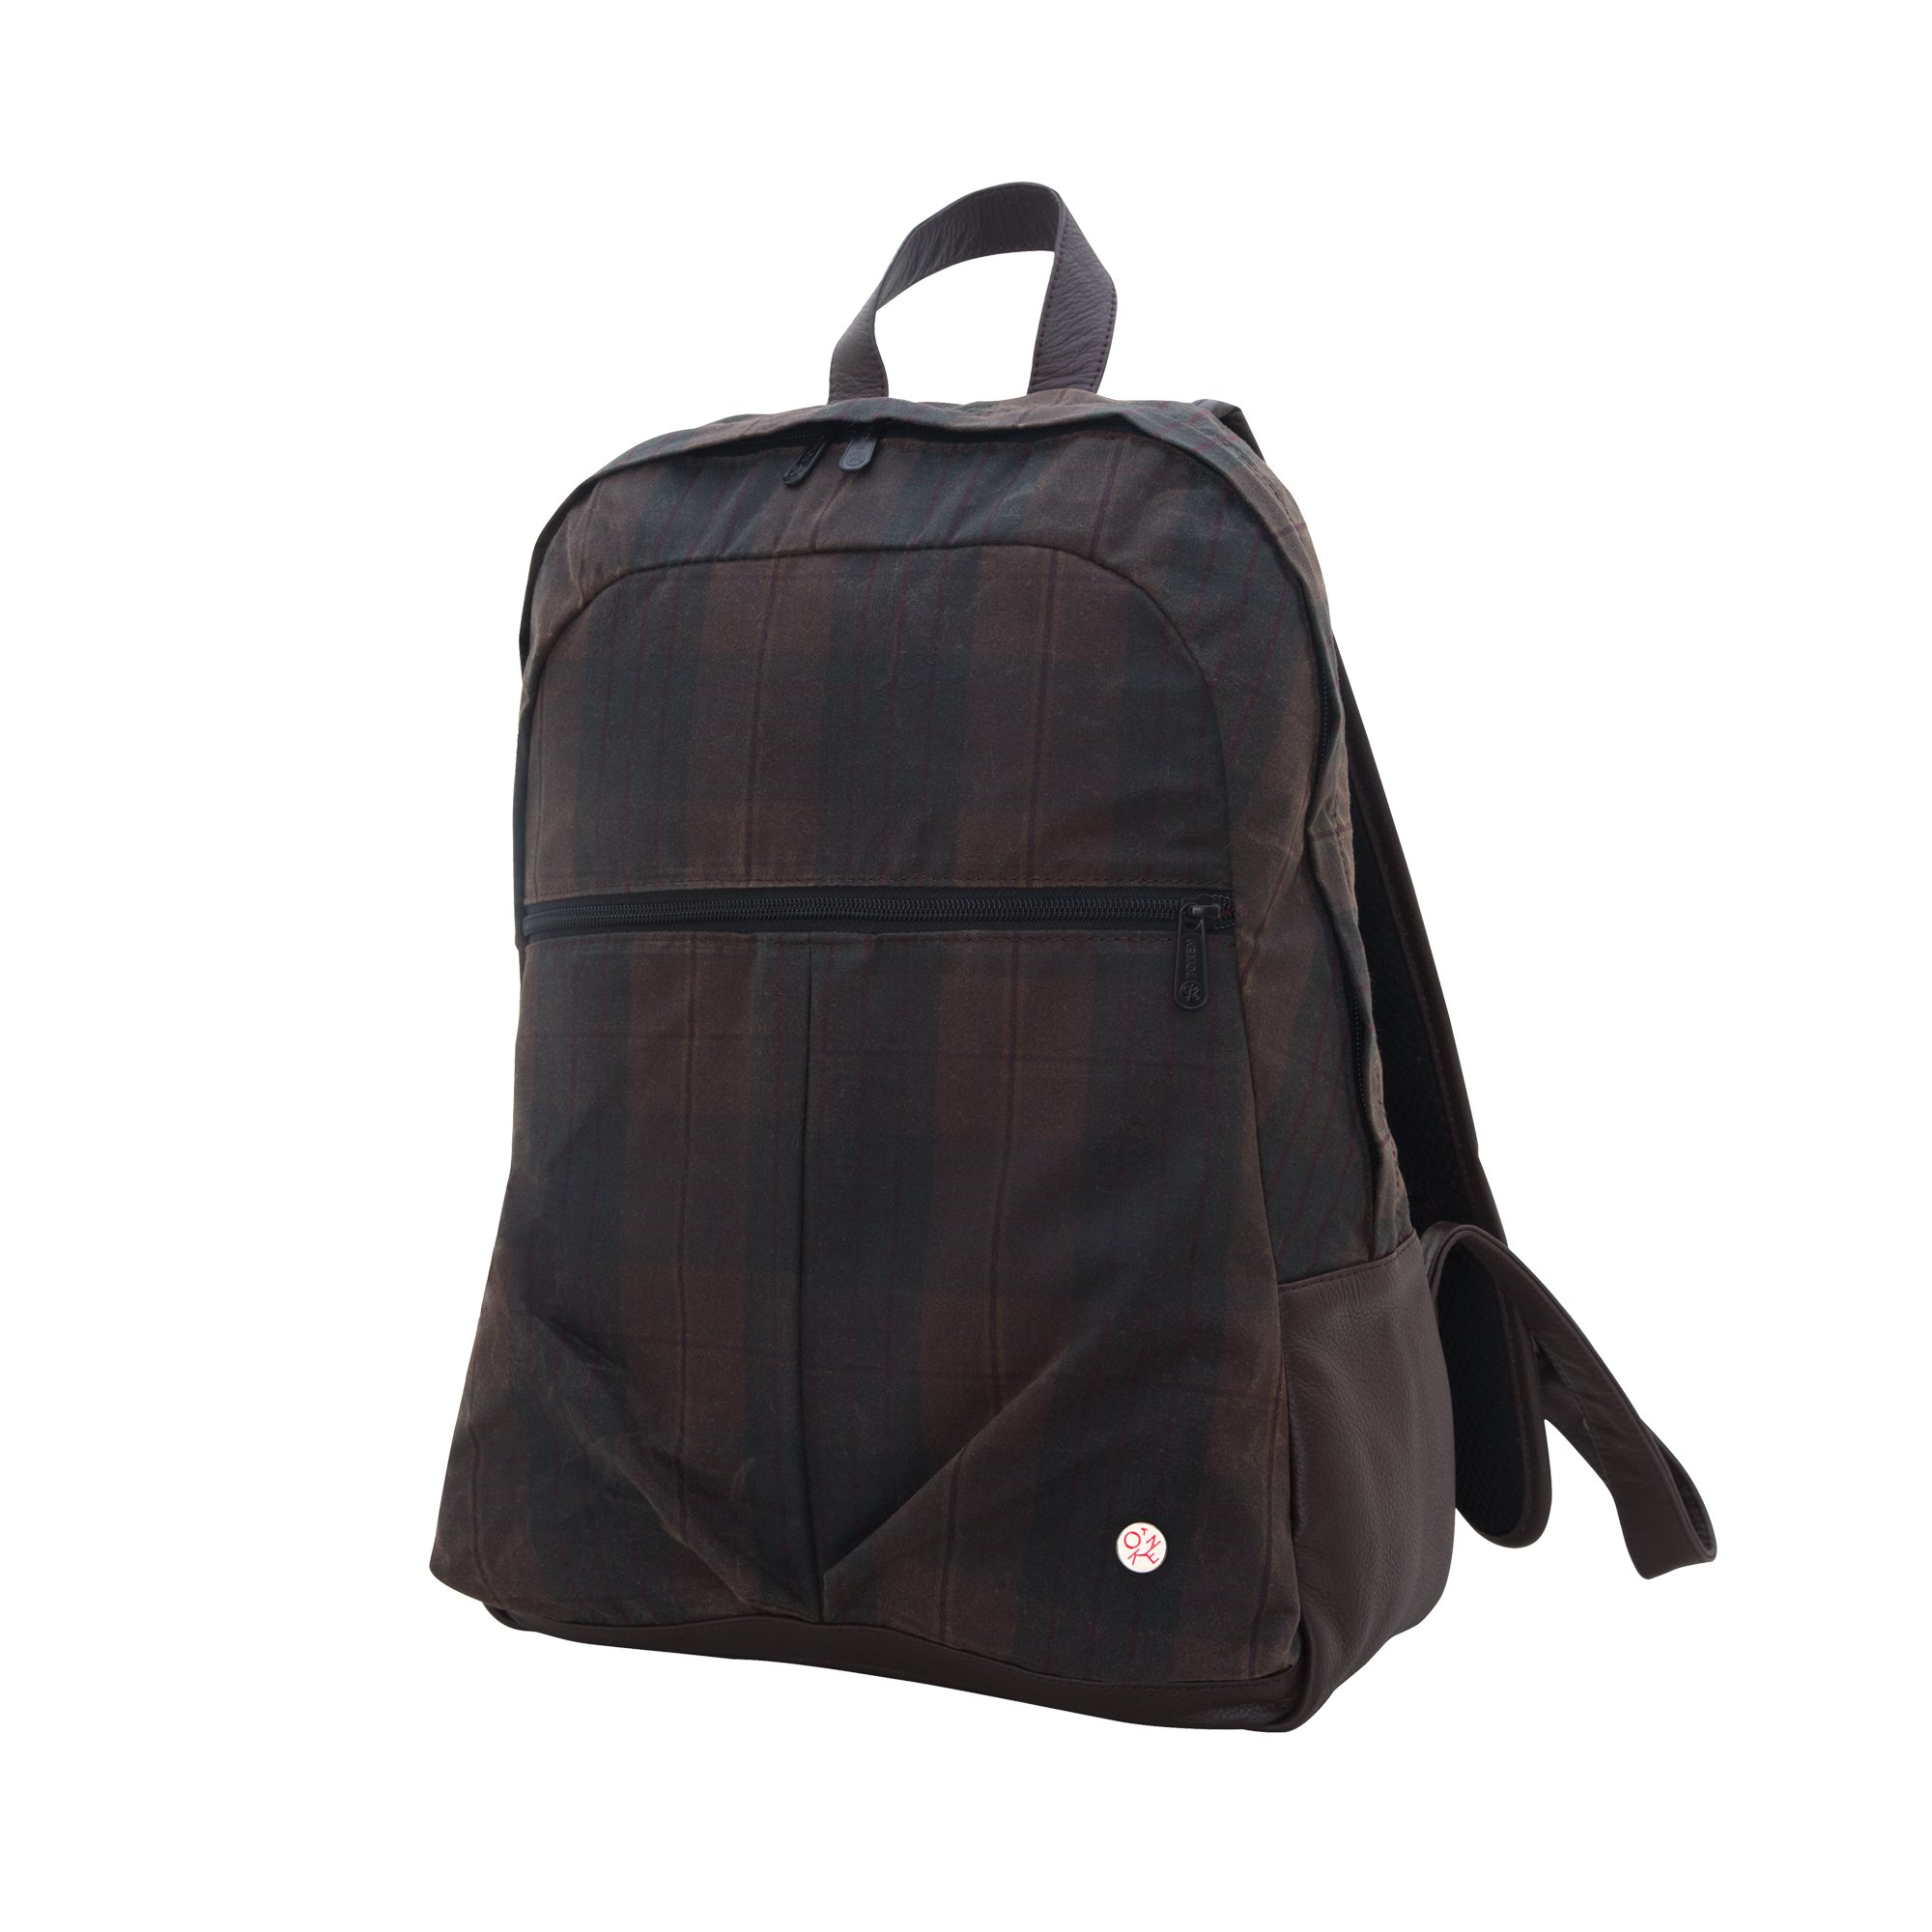 Token Bags Waxed Woodhaven Backpack, Dark Brown Plaid, One Size